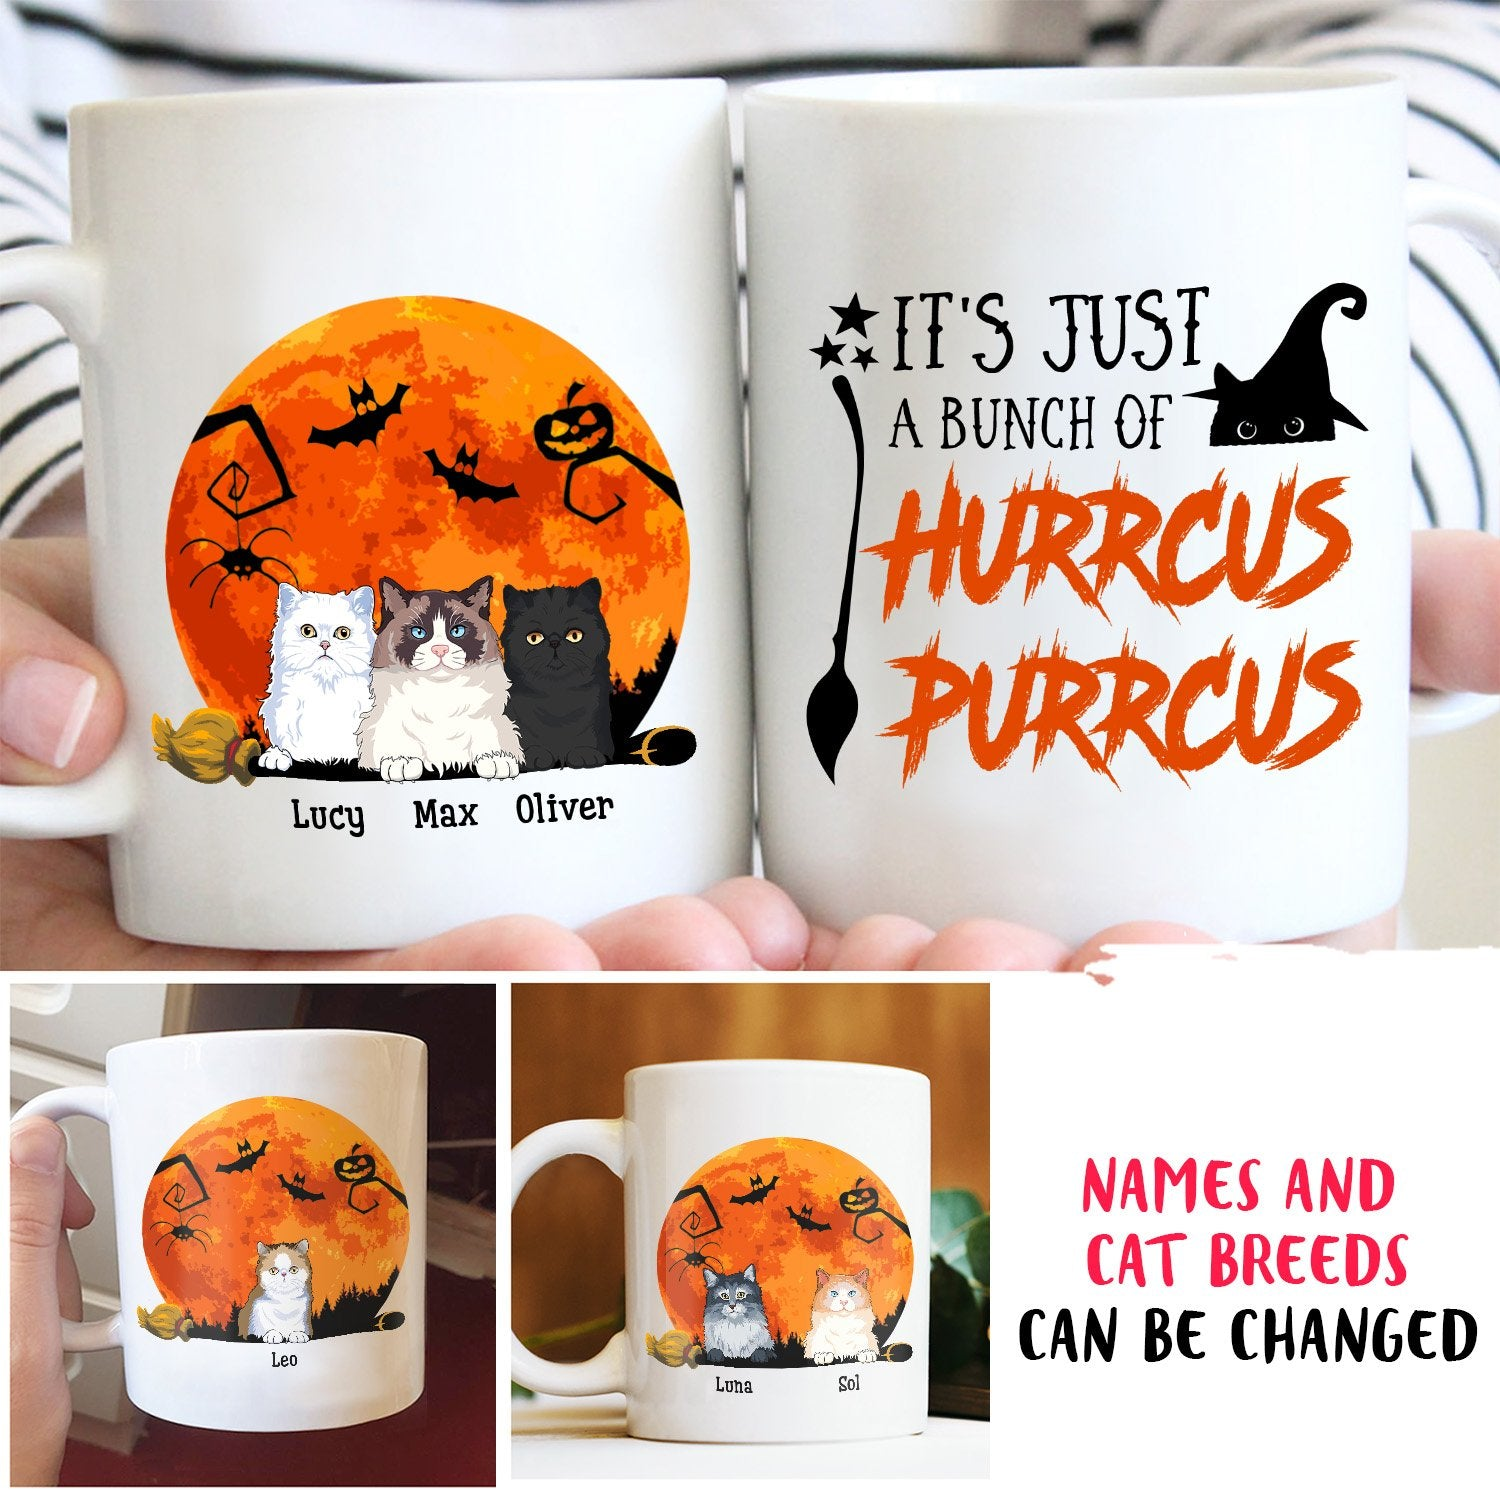 Hurrcus Purrcus - Personalized Custom Mug